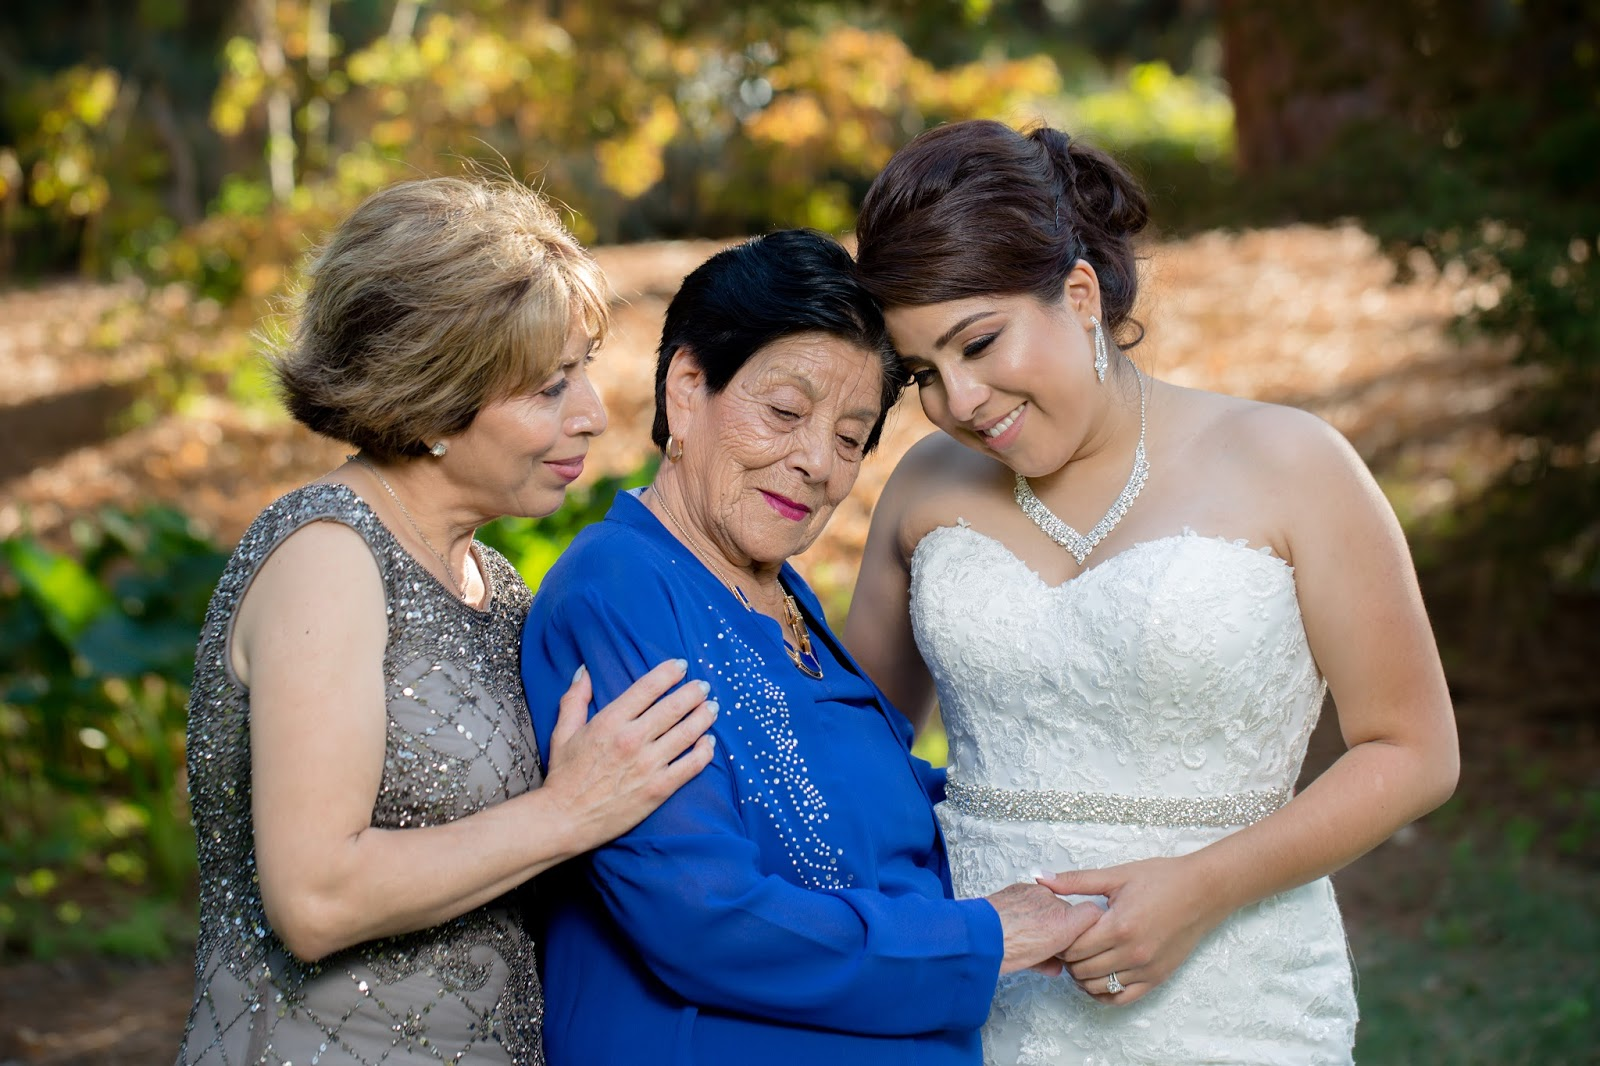 Bride, Mother of the Bride, and Grandmother of the Bride share loving embrace